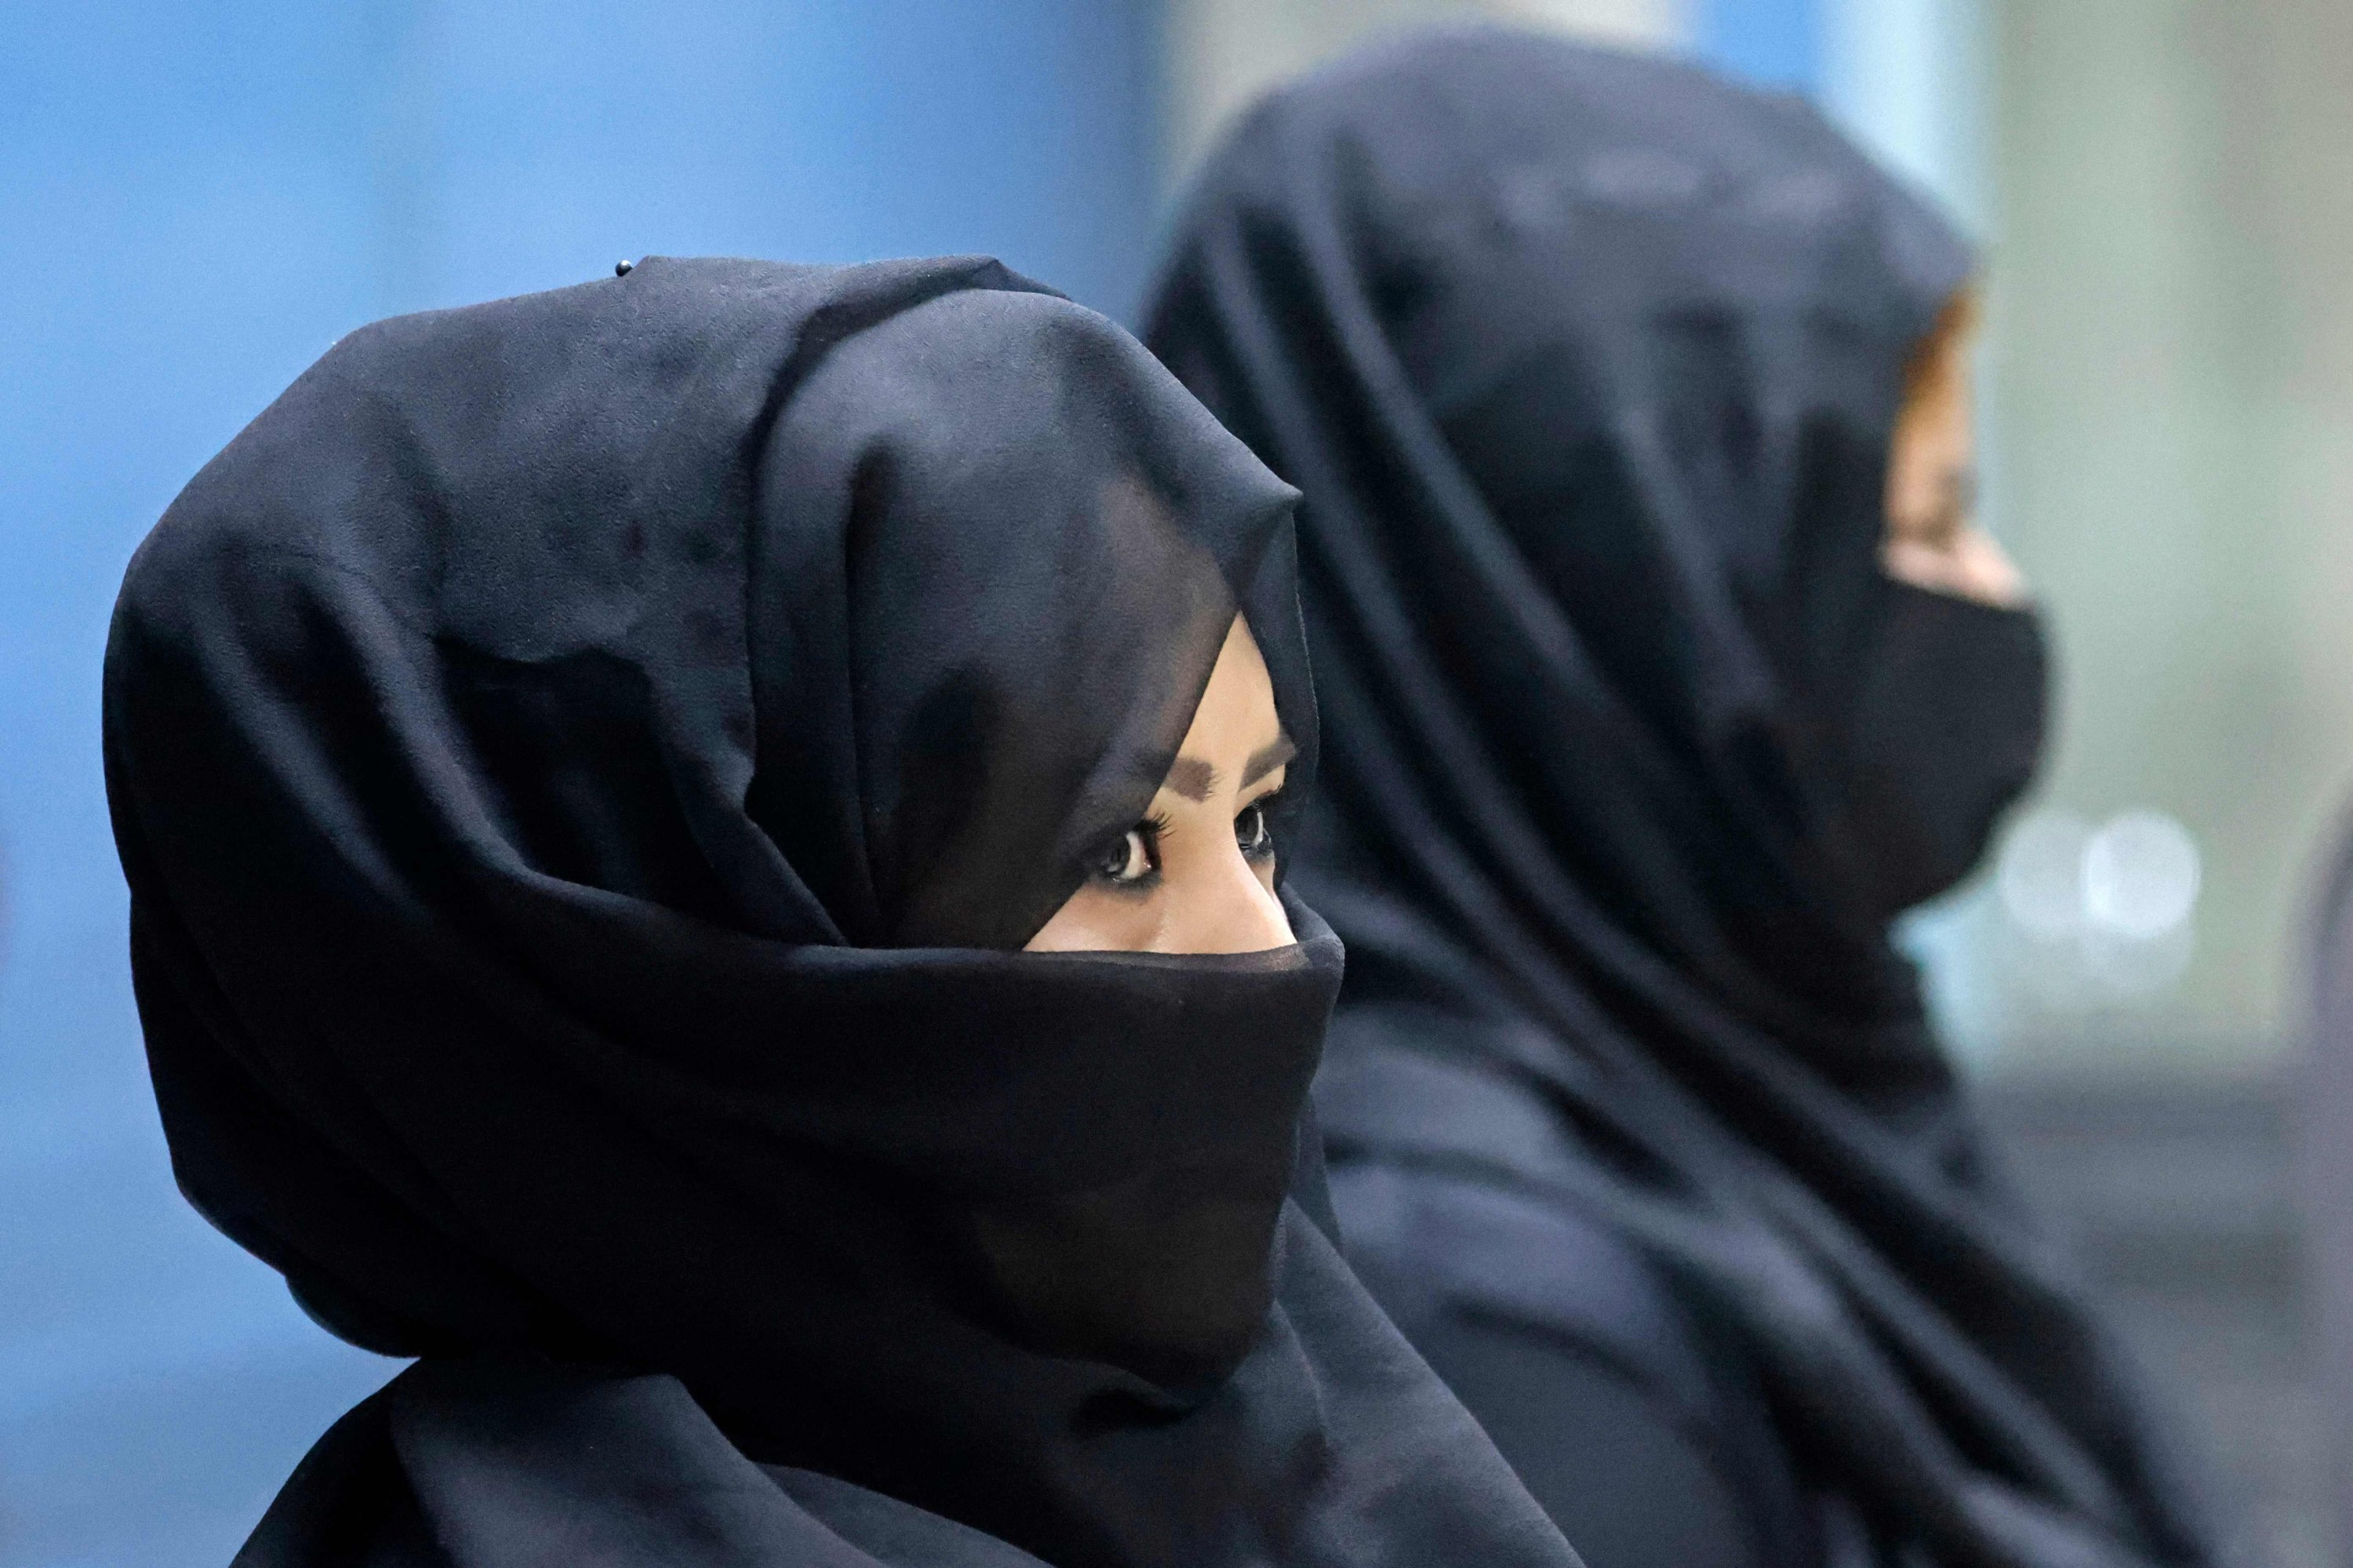 Female Afghan airport workers are pictured at a security checkpoint of the airport in Kabul, Afghanistan, Sept. 12, 2021. (Photo by Karim SAHIB via AFP)